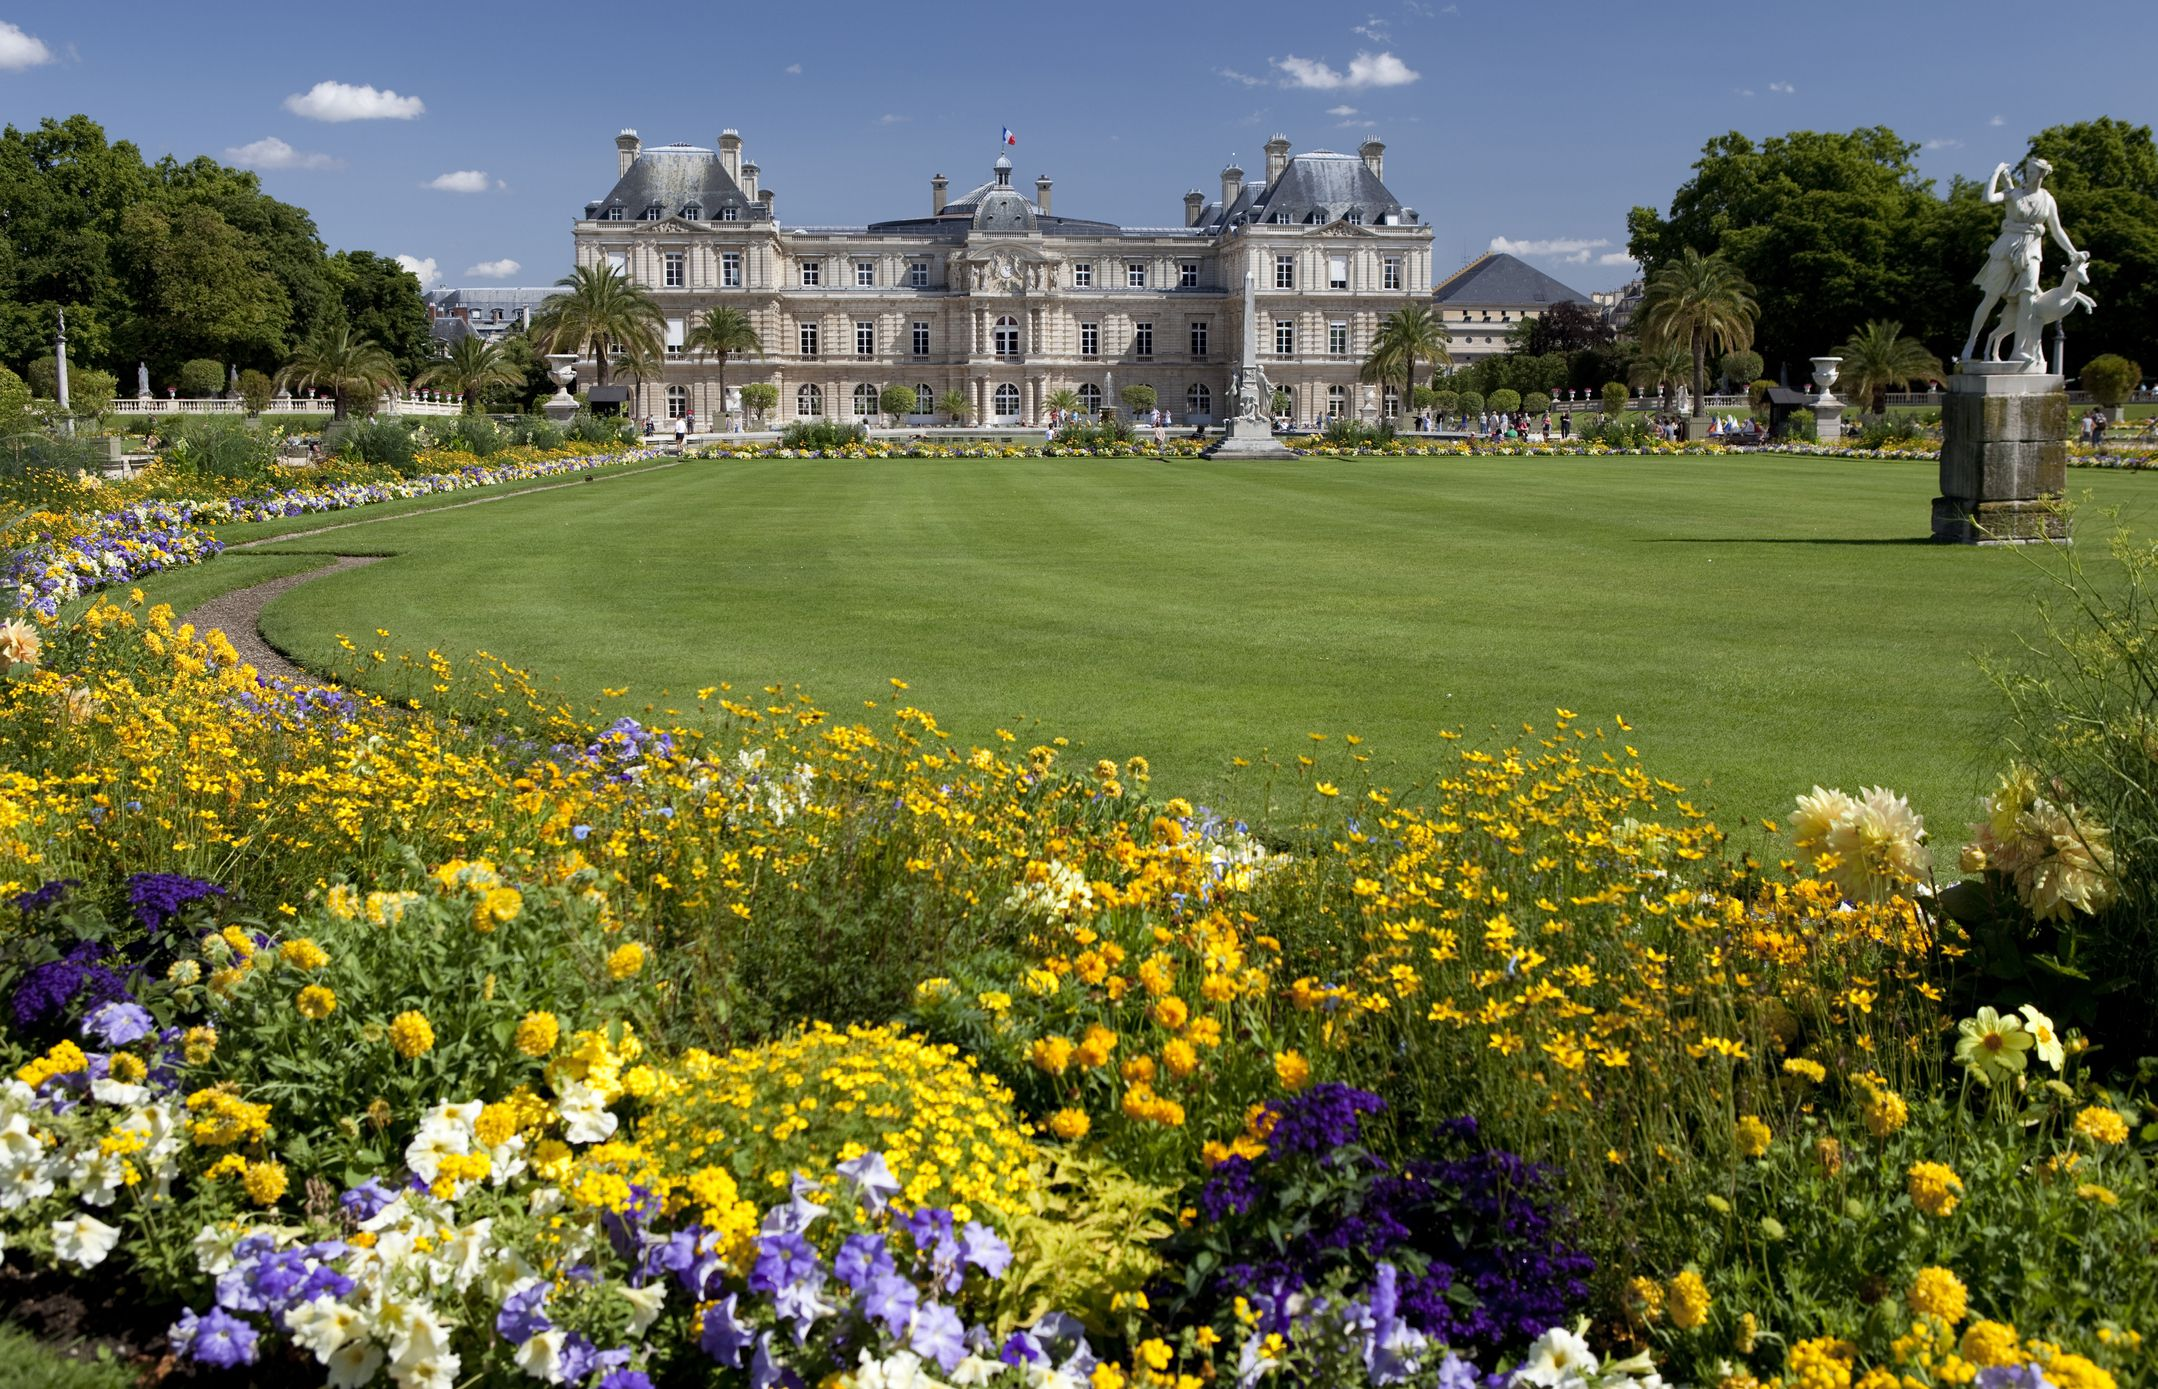 Visitor S Guide To The Luxembourg Gardens In Paris